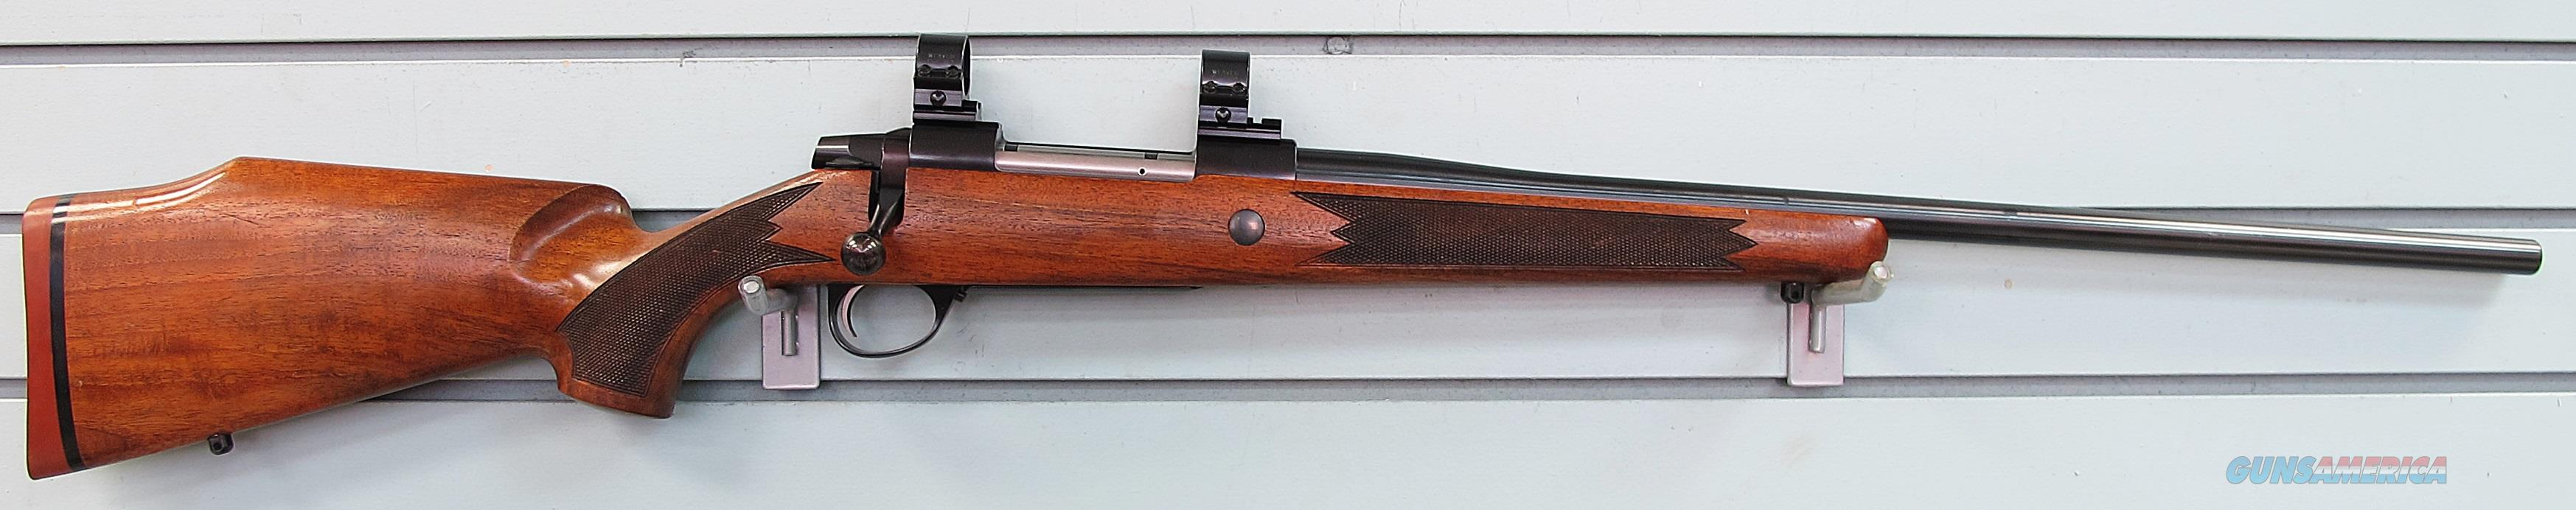 SAKO AV FINNBEAR 30-06  Guns > Rifles > Sako Rifles > Other Bolt Action